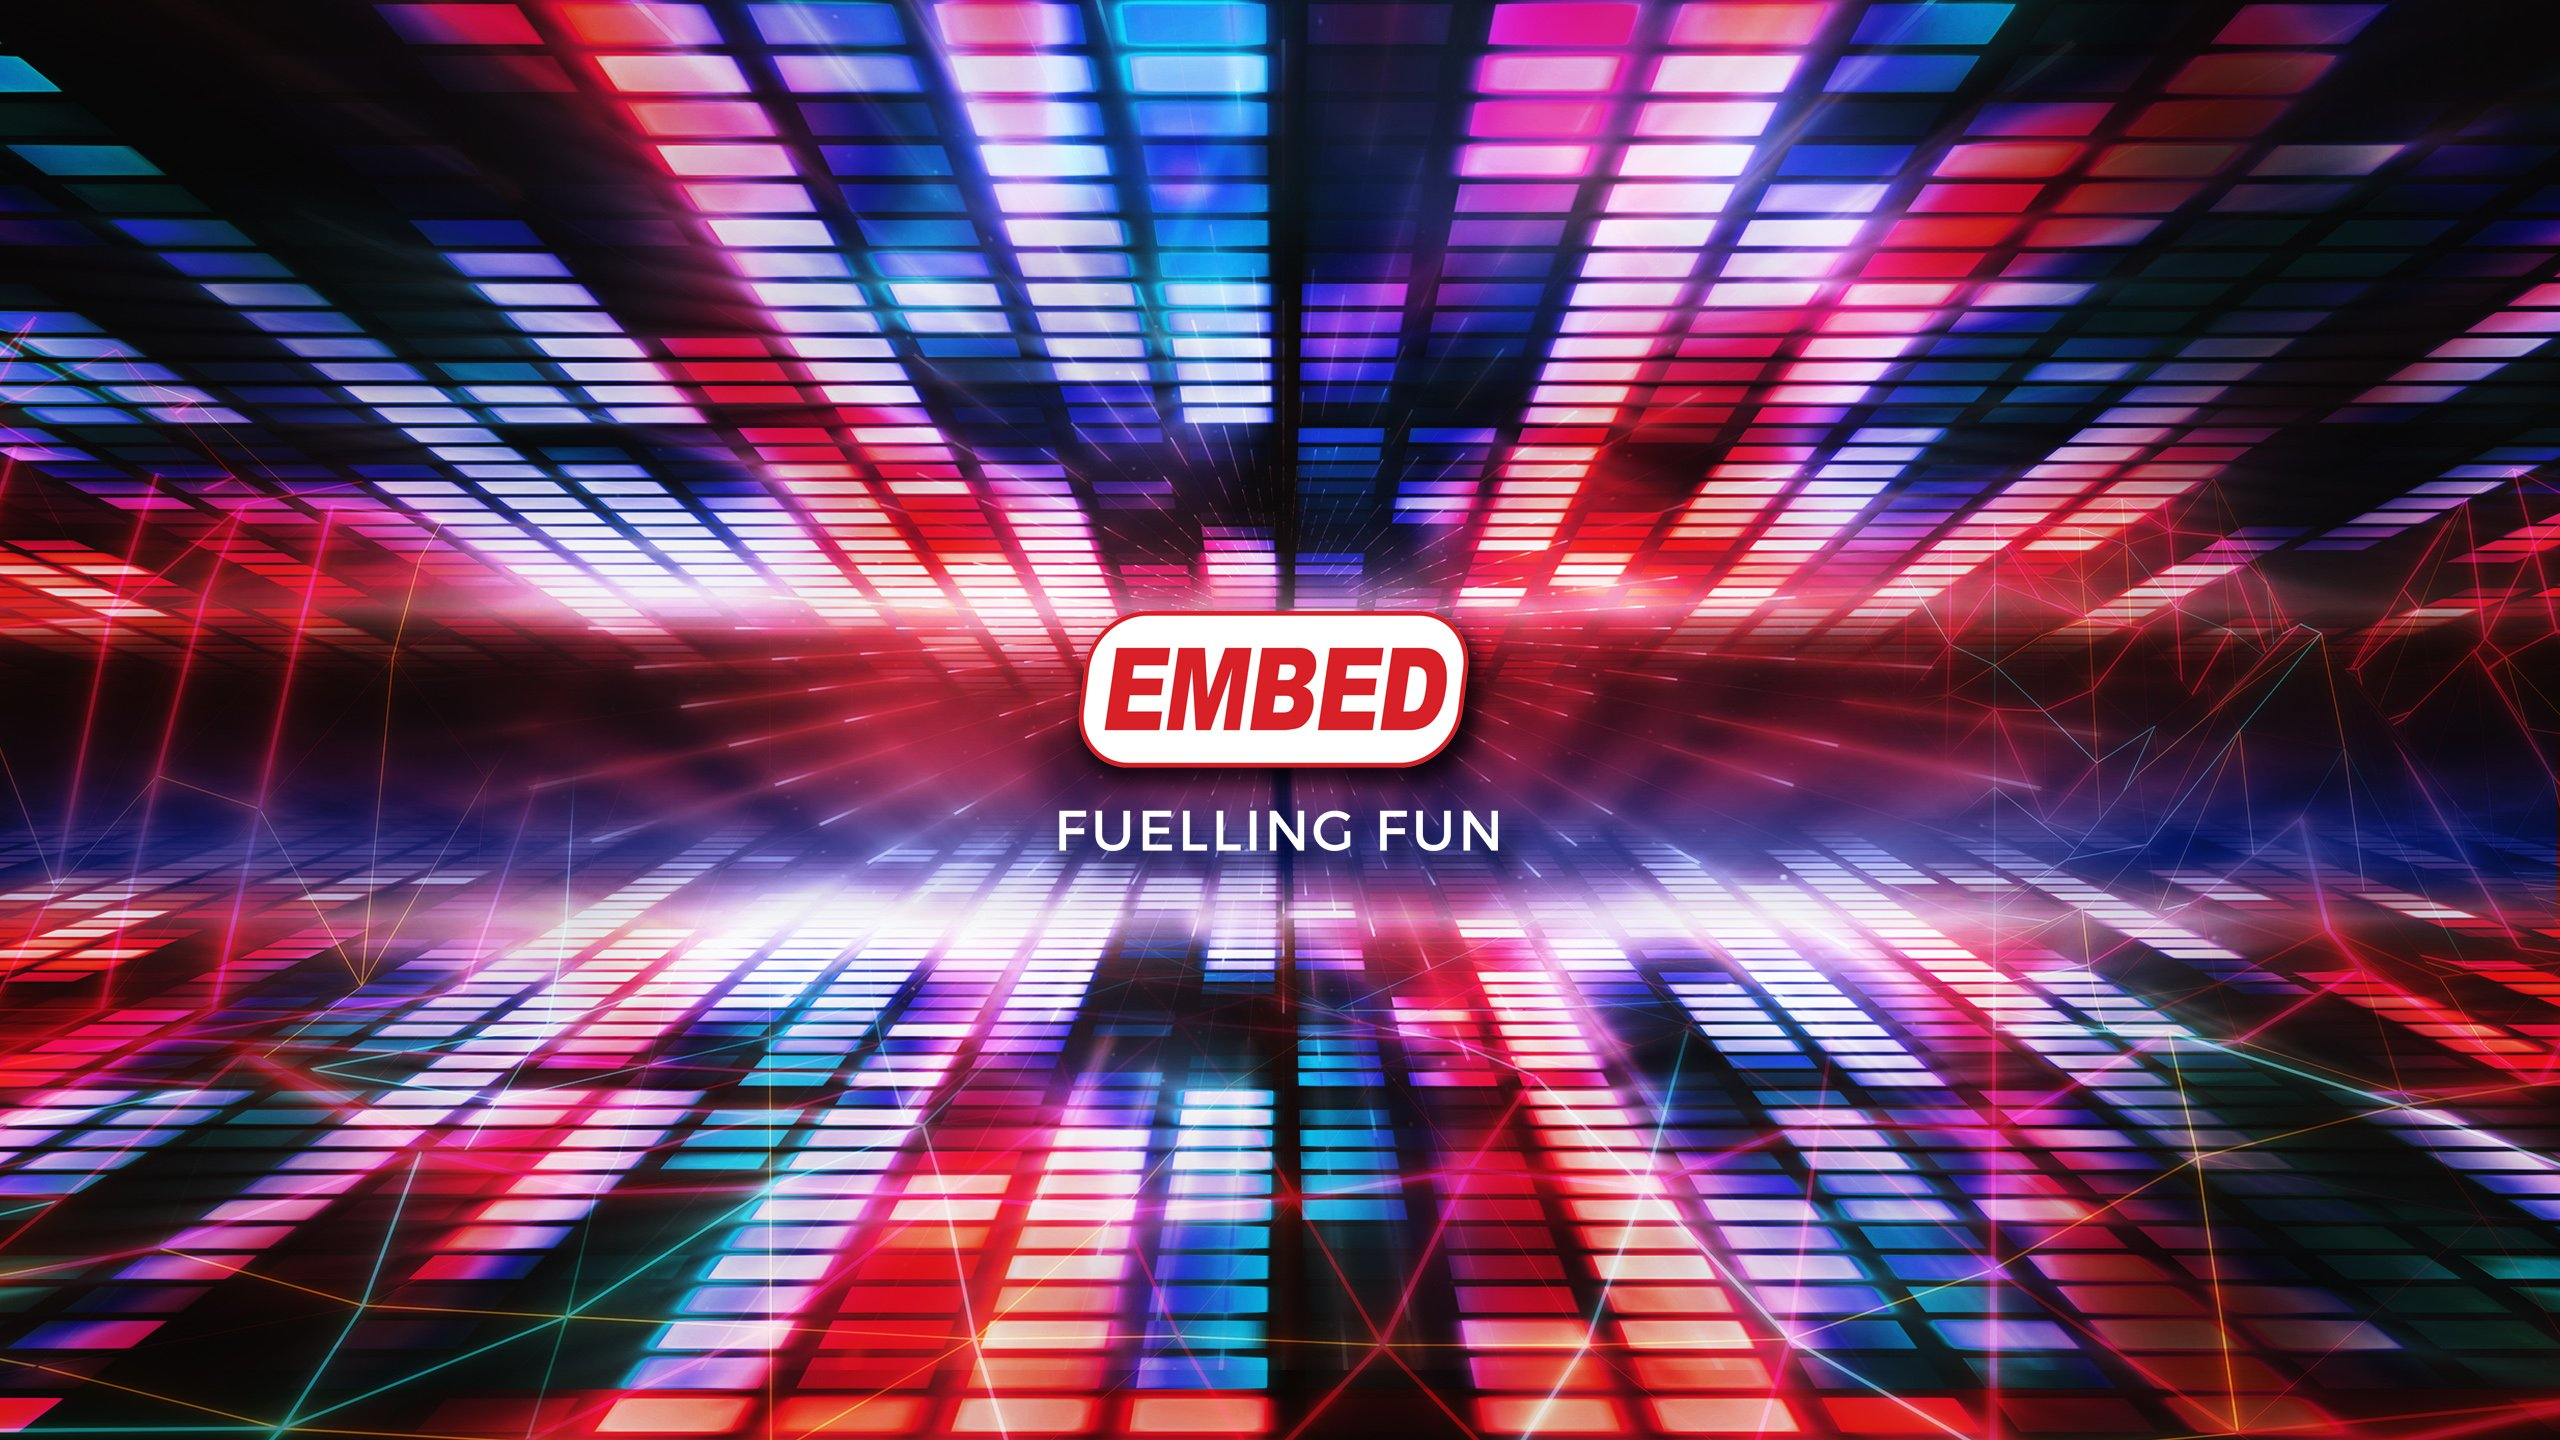 Subscribe to Embed's YouTube channel for information snacks, tips to help you run your business and get to know the Embed team!